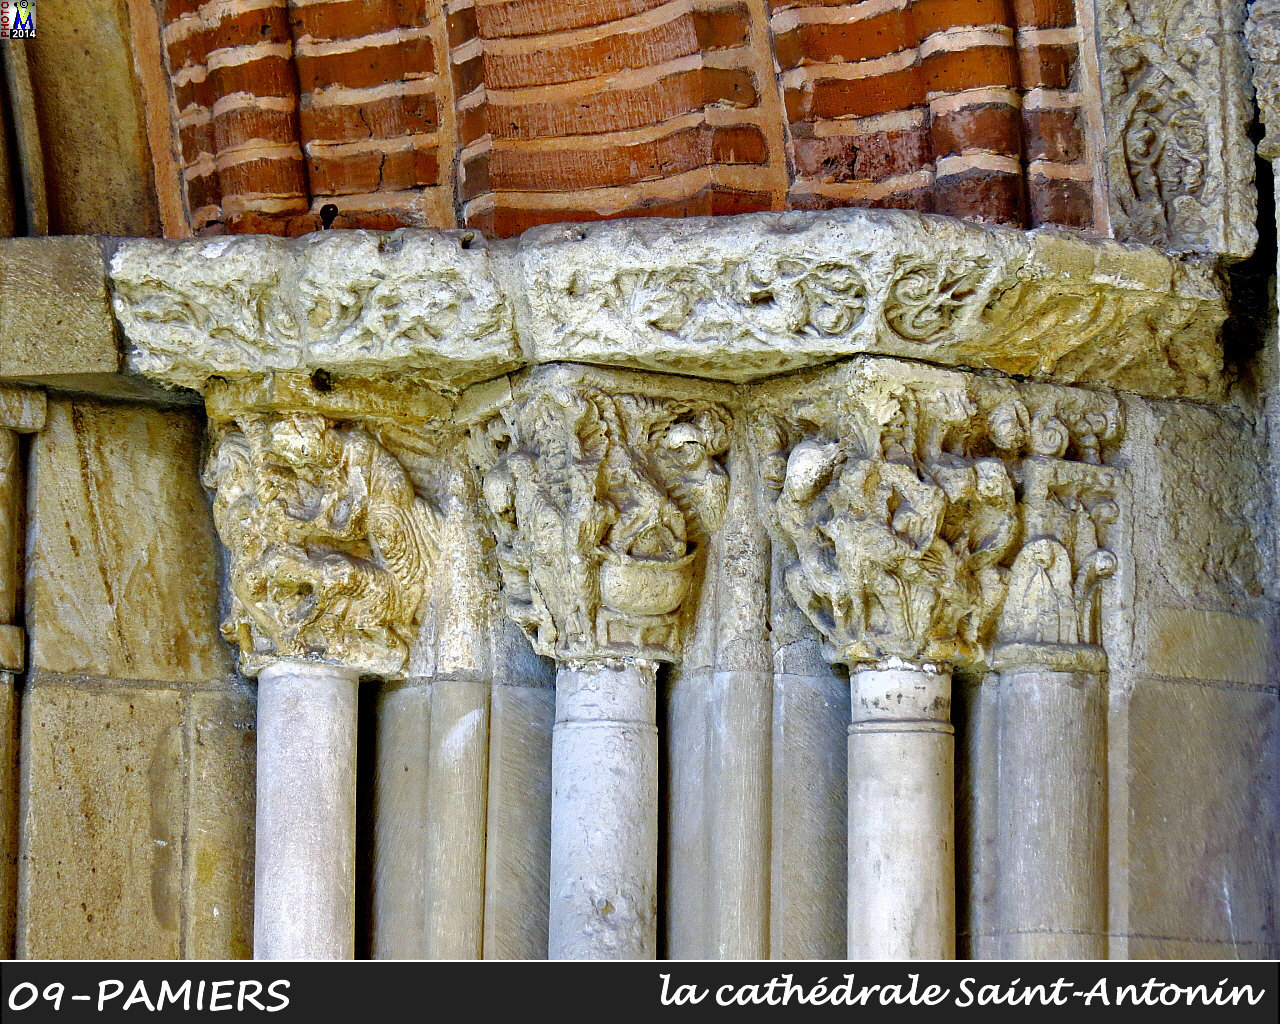 09PAMIERS_cathedrale_124.jpg